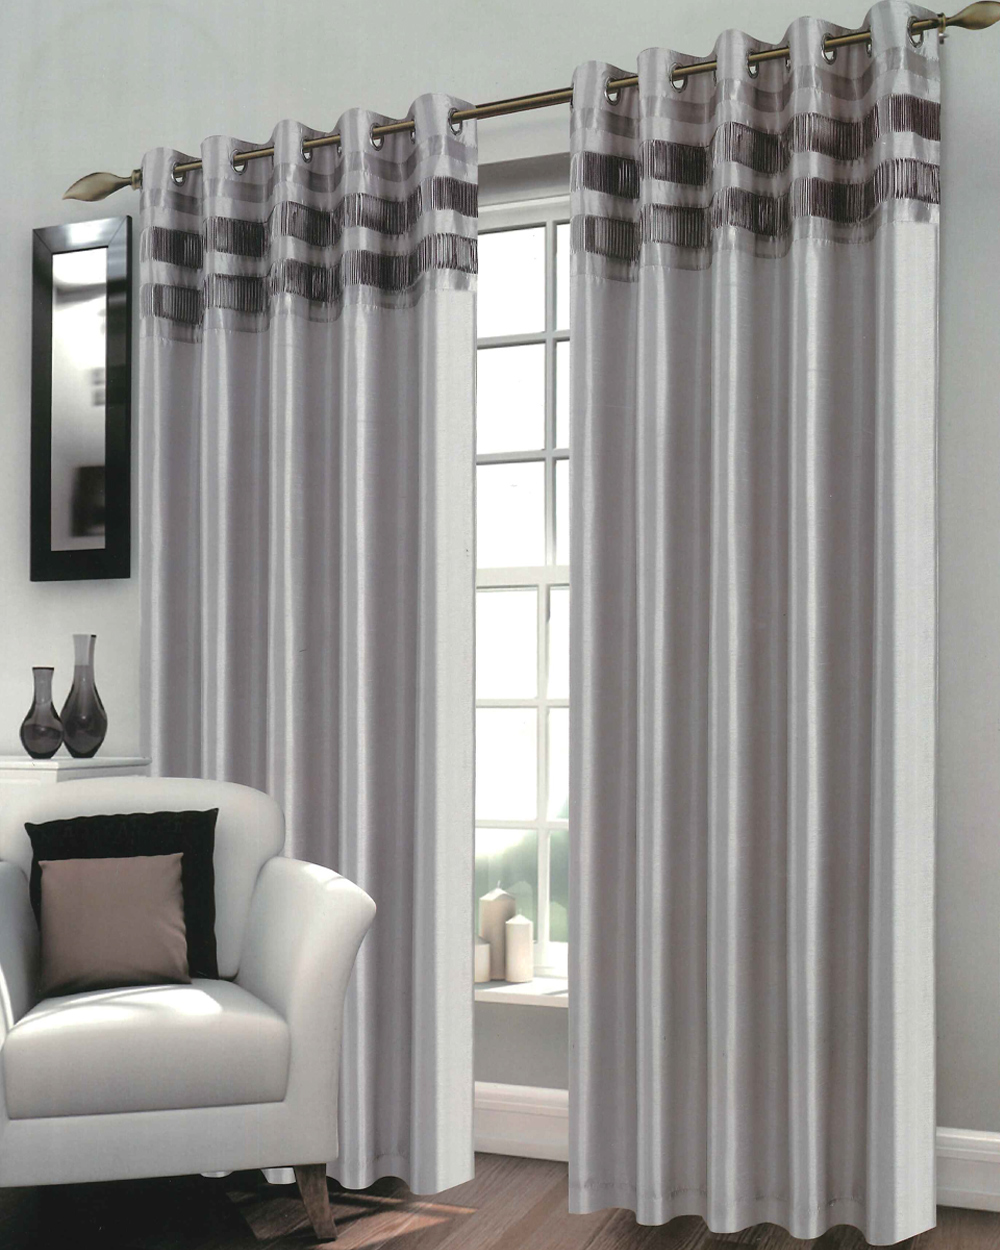 silver curtains expand. bergen silver eyelet curtains JQJASFJ